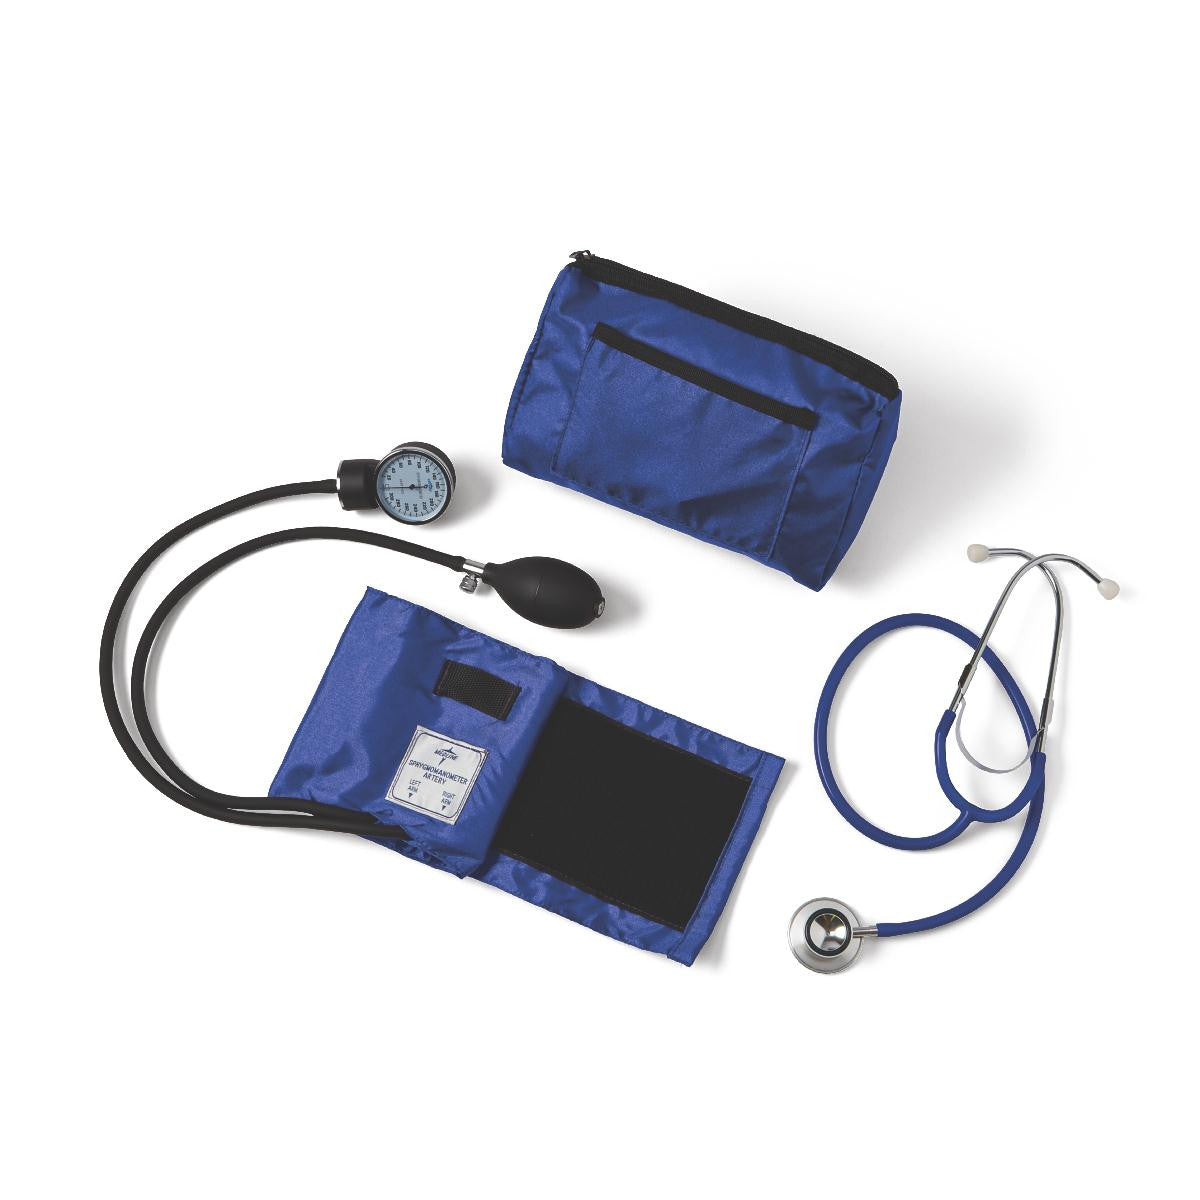 Compli-Mates Dual Head Aneroid Sphygmomanometer Combination Kits with Aneroid Sphygmomanometer and a Dual-Headstethoscope ROYAL BLUE (1 Count)